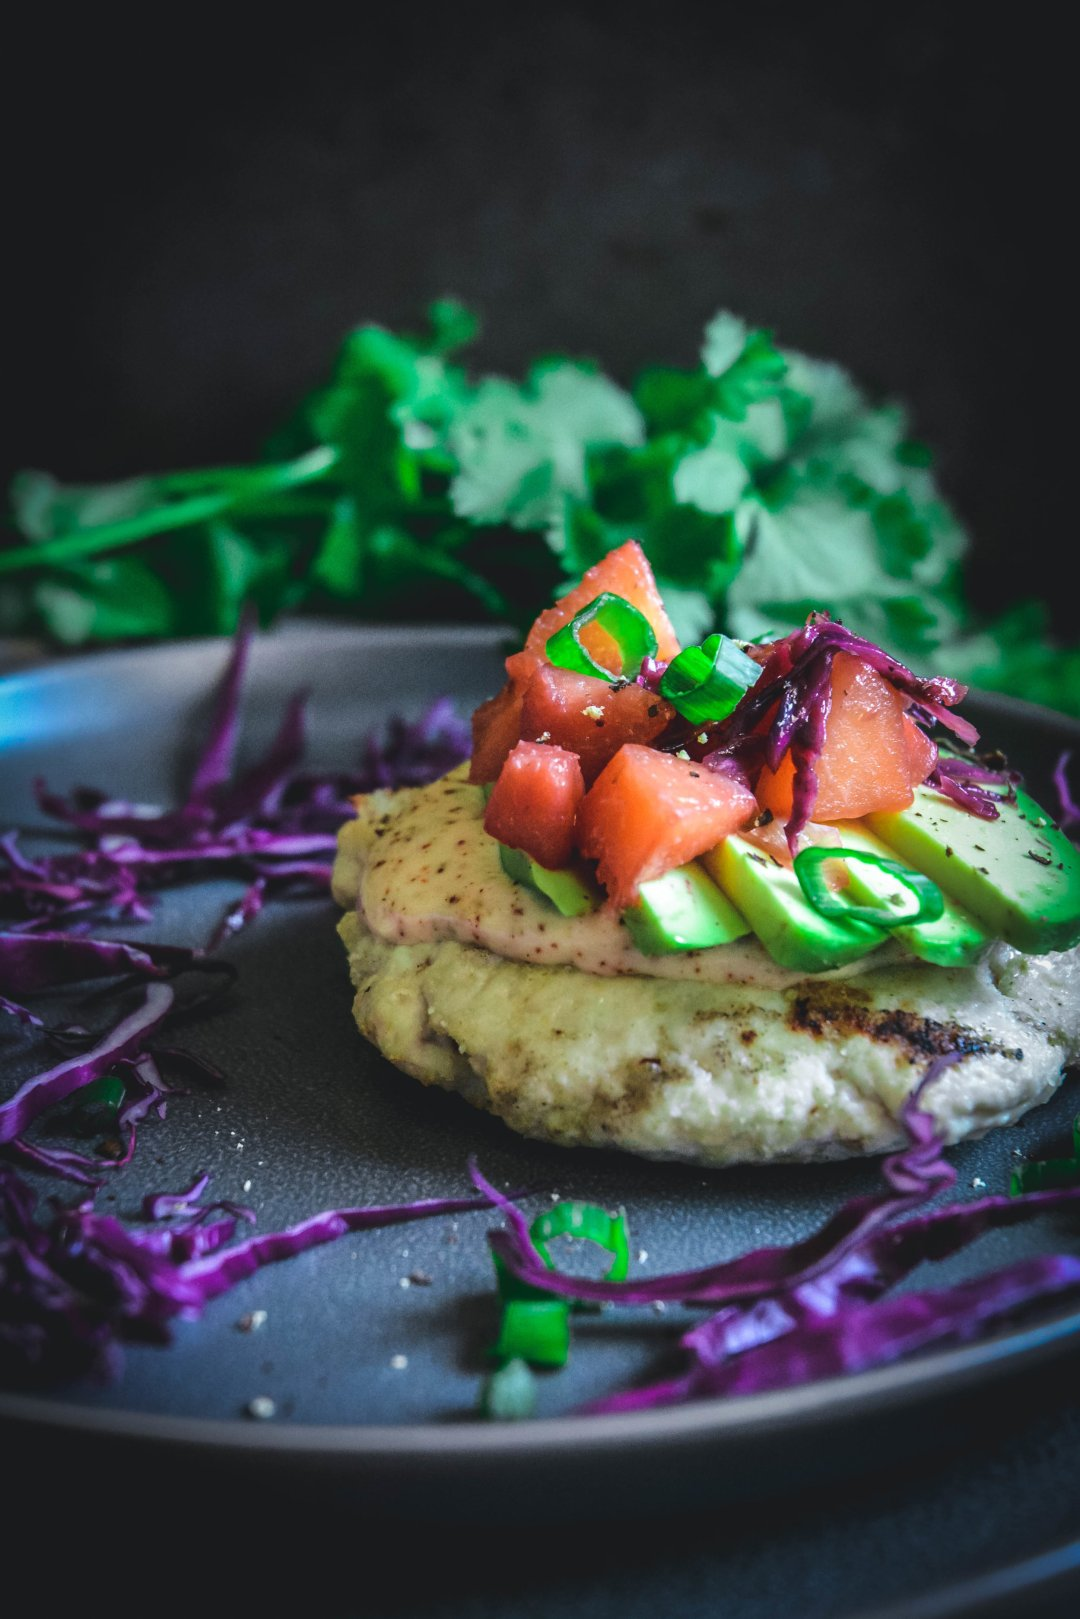 Turkey burgers on plate with avocado, peach chutney and cilantro